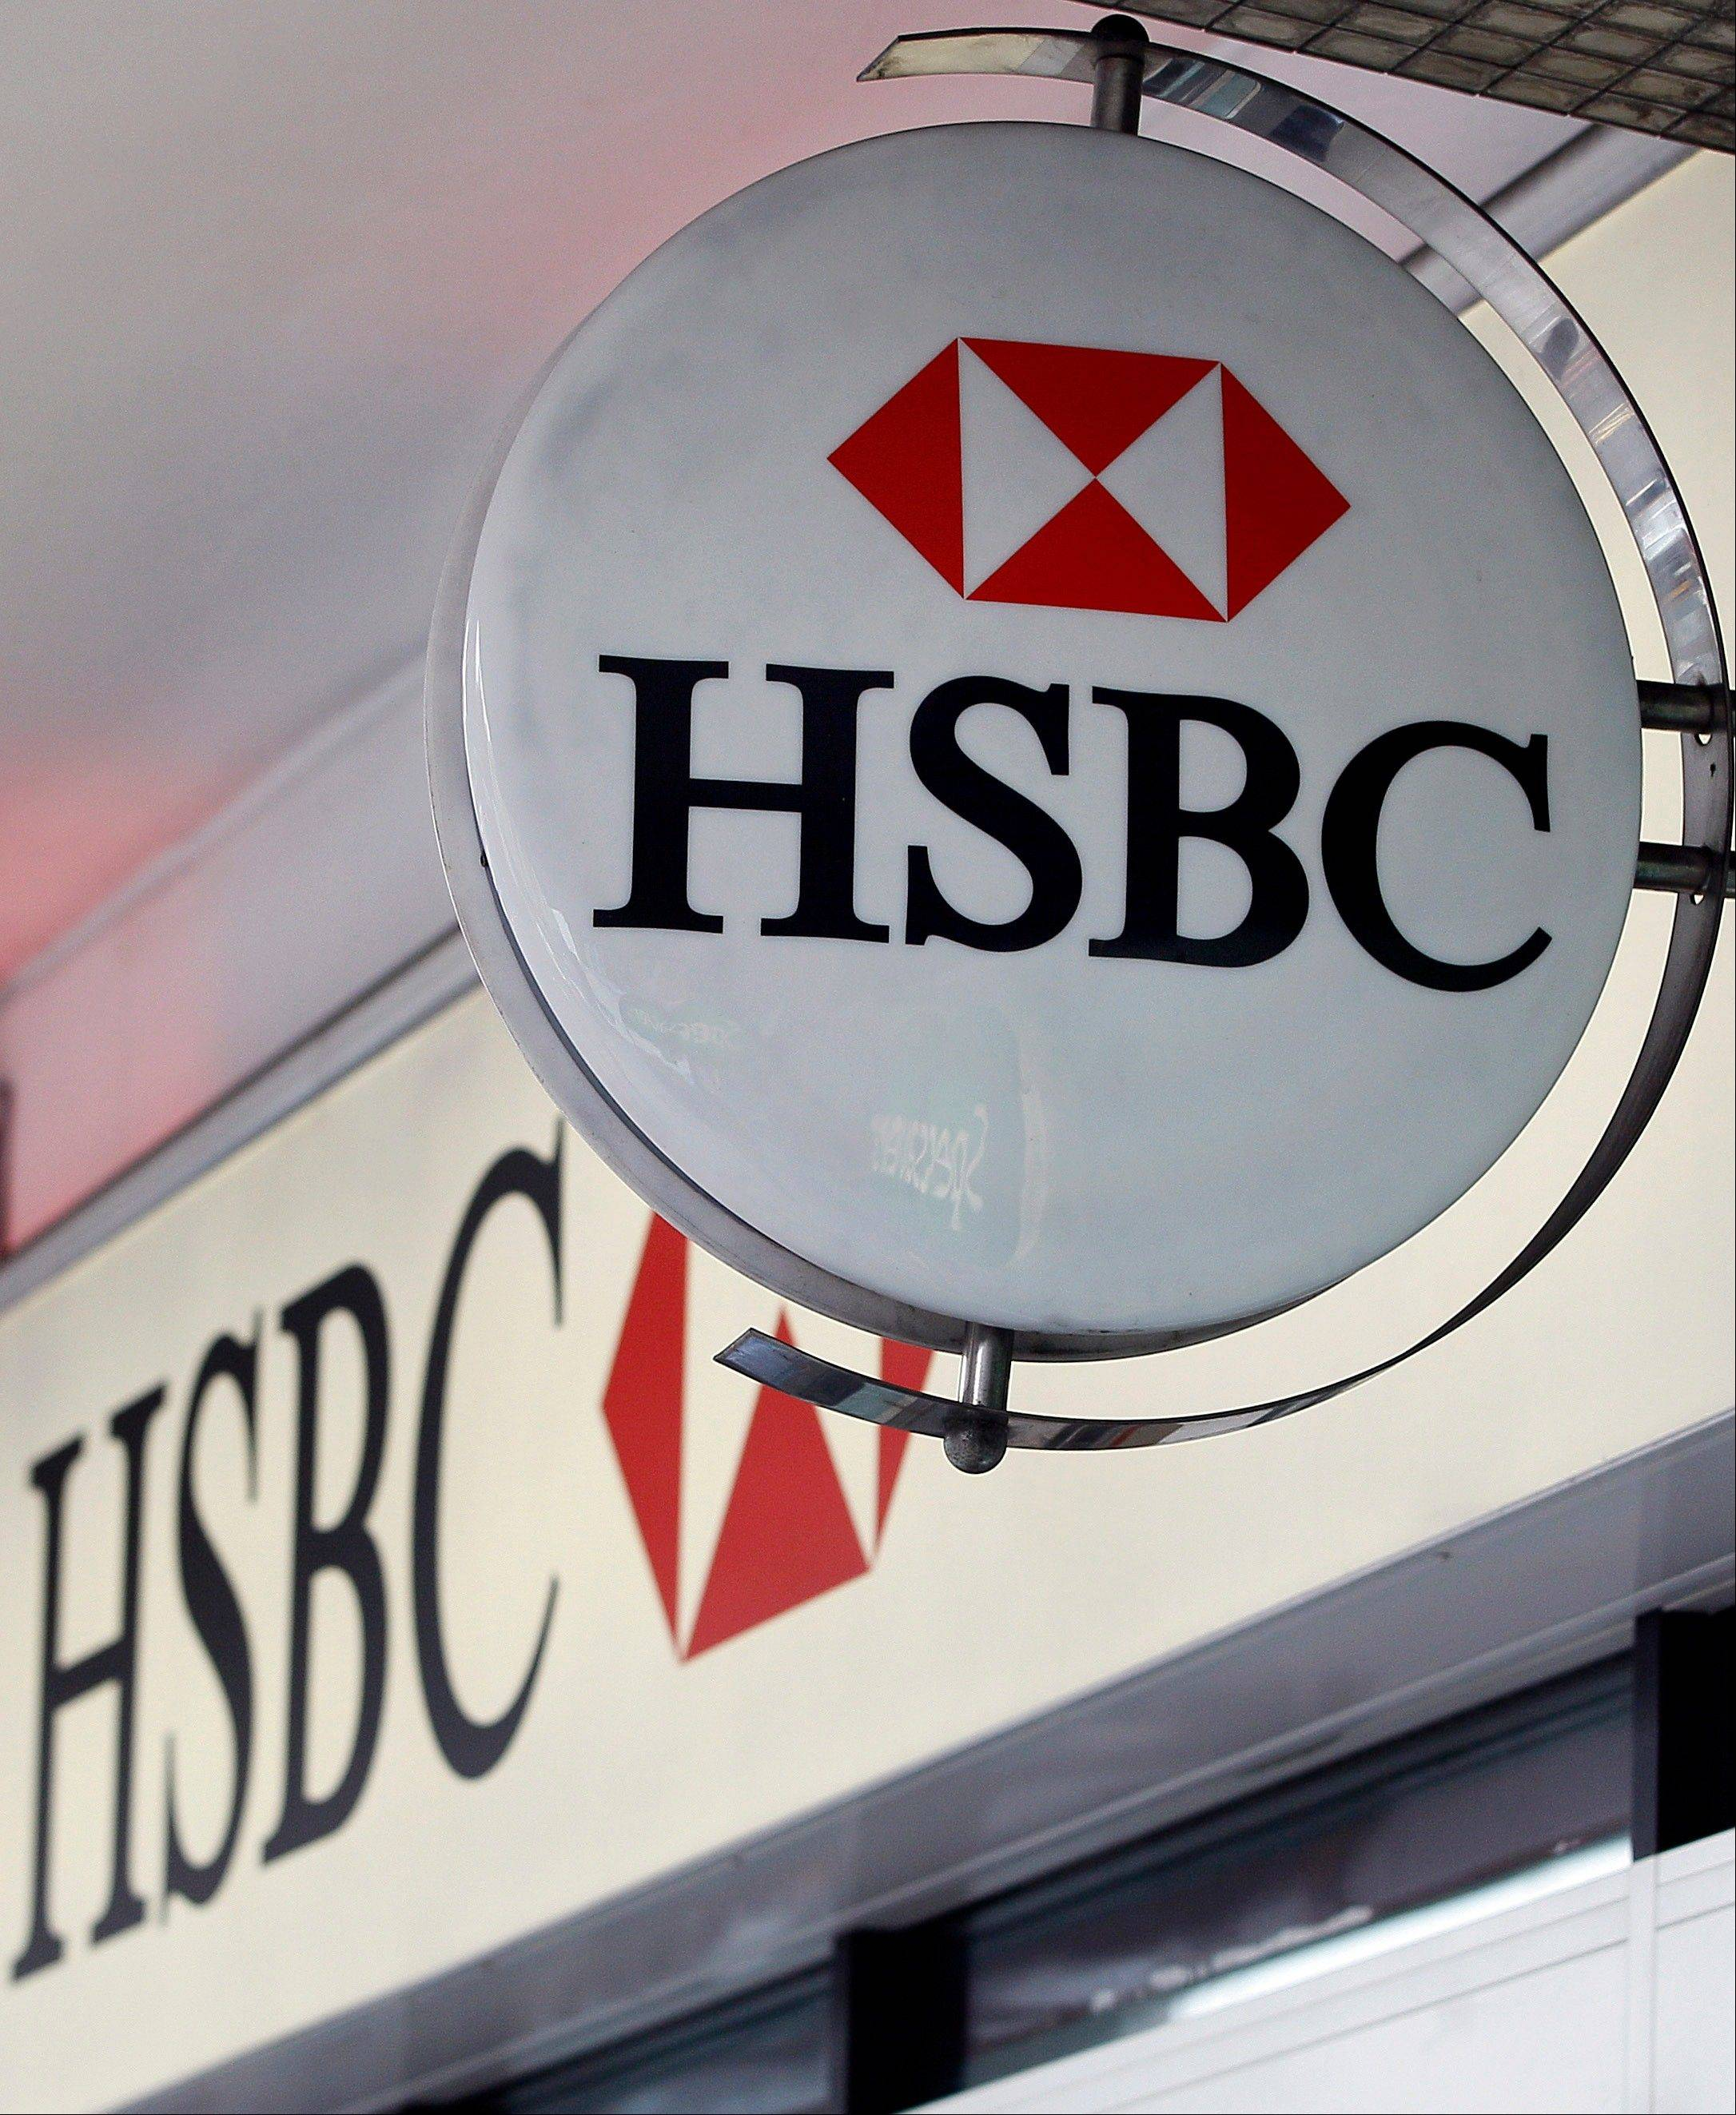 HSBC avoided a legal battle that could further savage its reputation and undermine confidence in the global banking system by agreeing Tuesday Dec. 11, 2012 to pay $1.9 billion to settle a U.S. money-laundering probe.